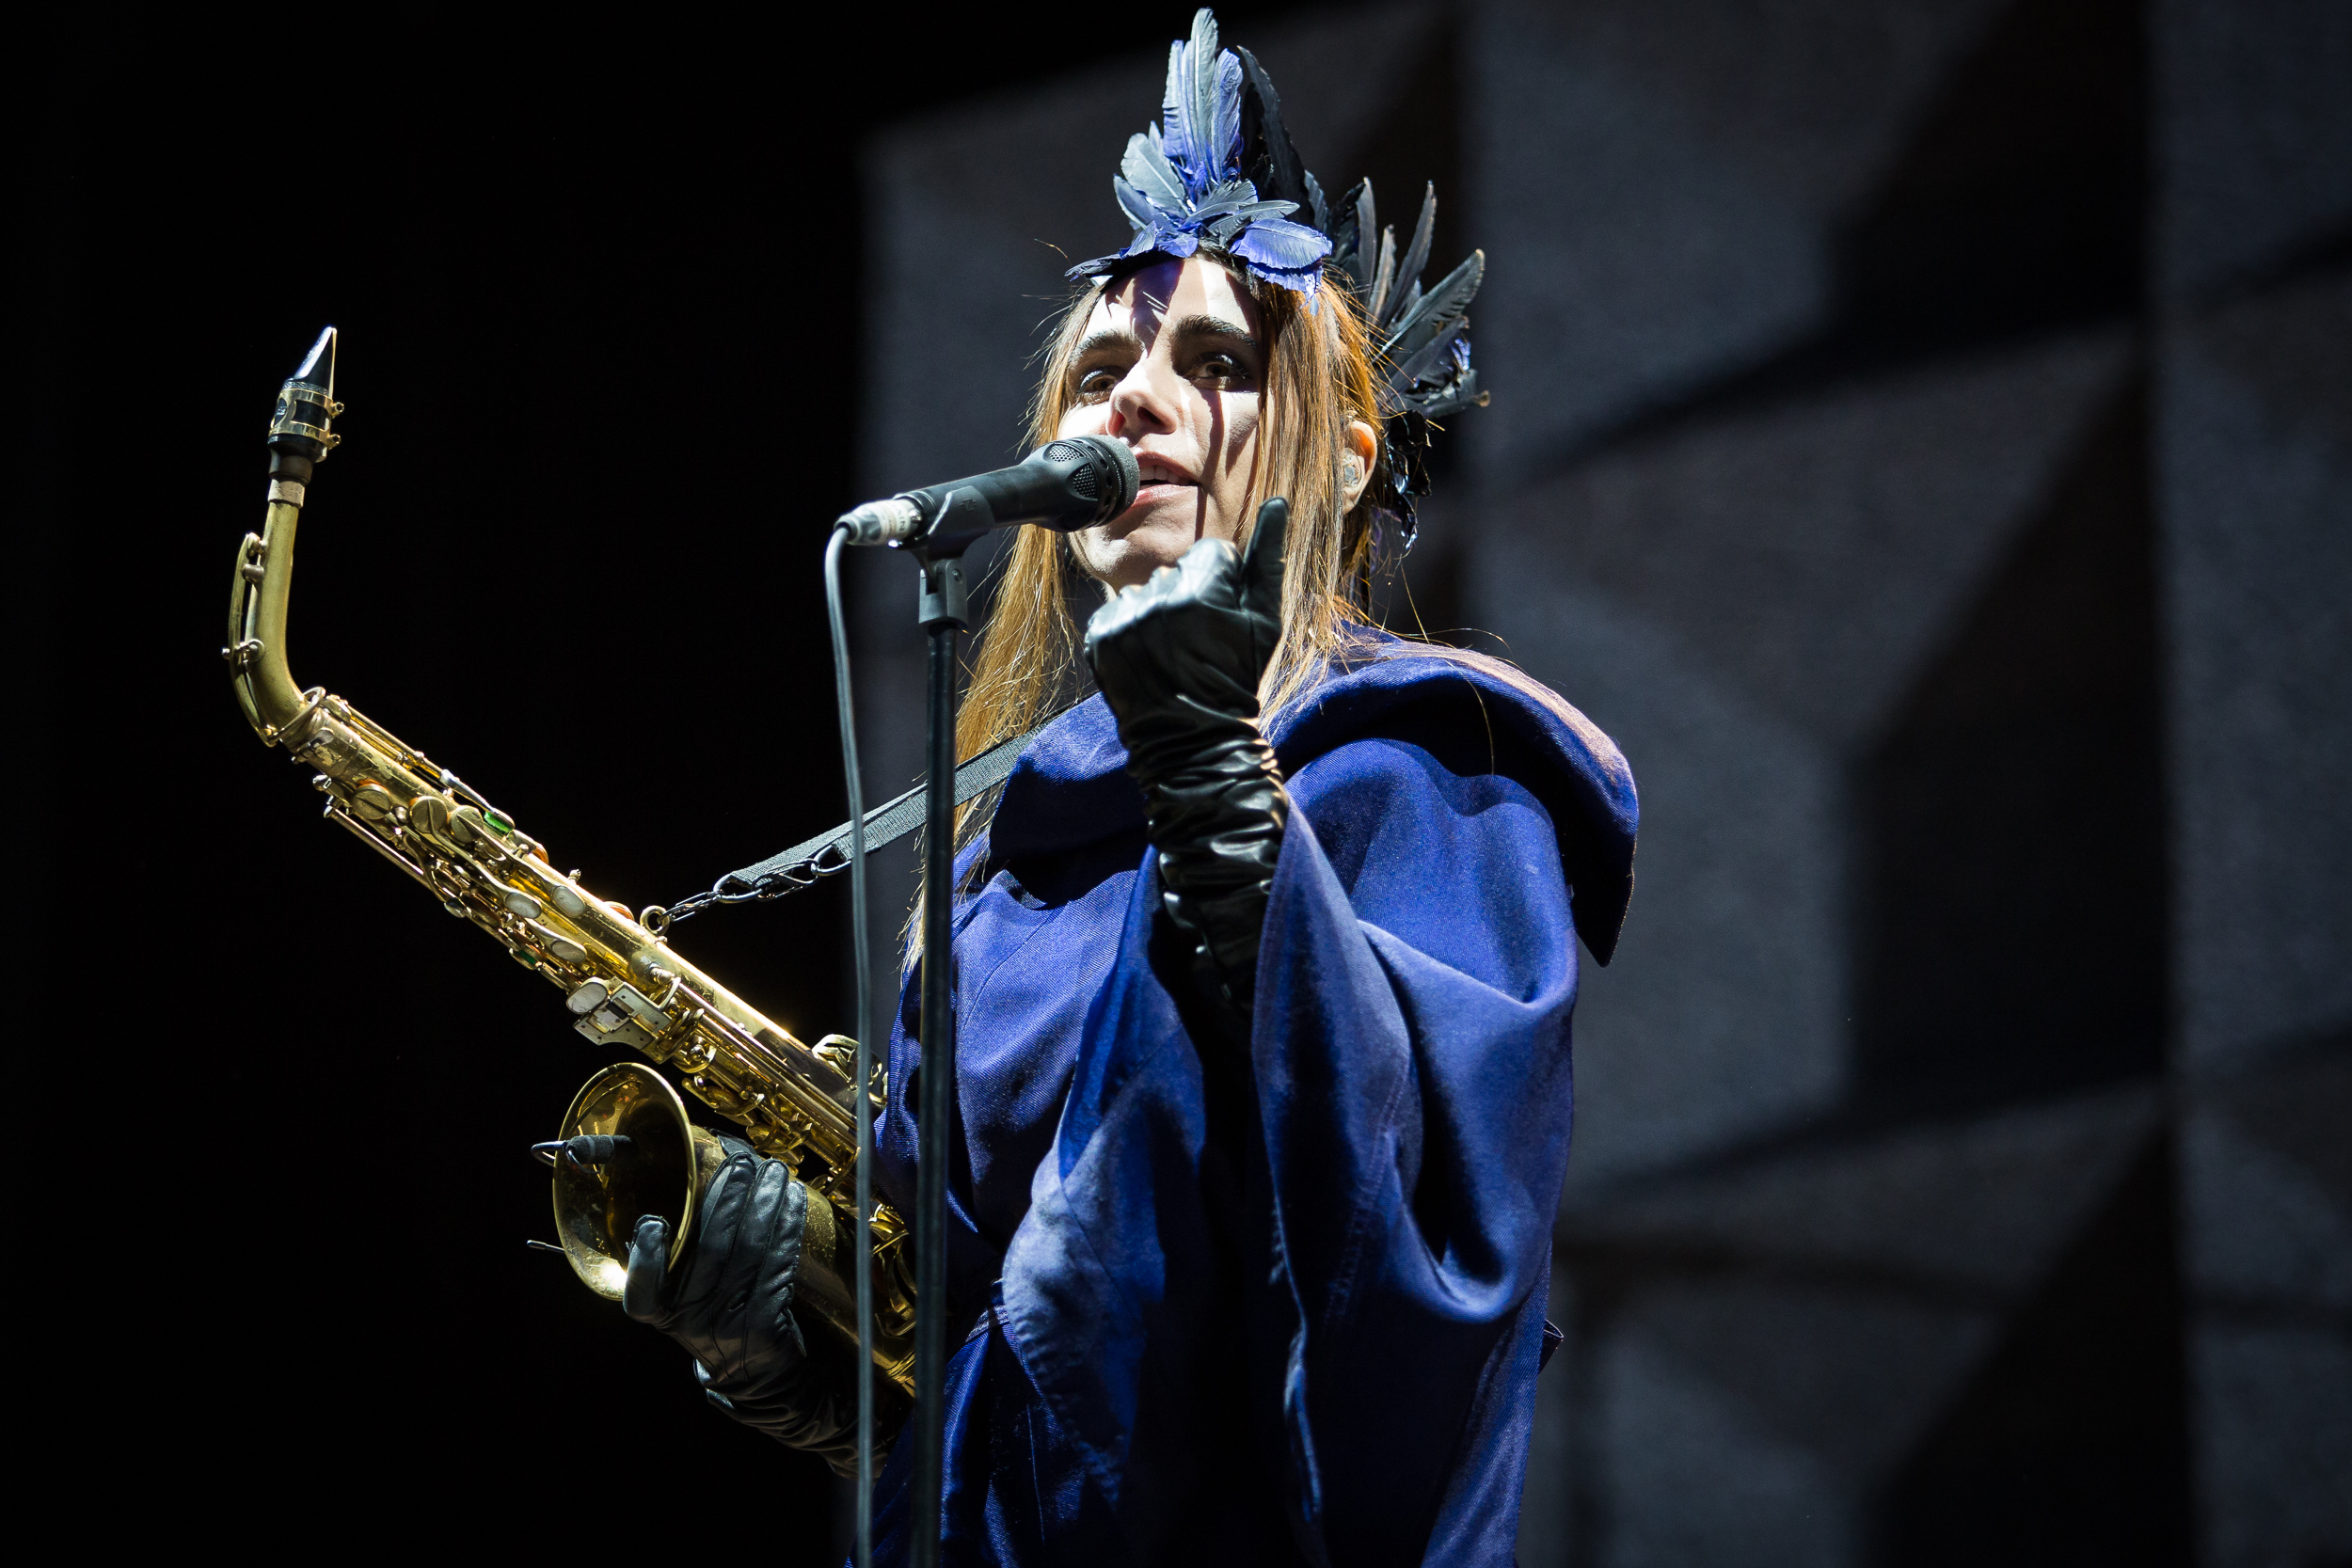 PJ Harvey at Øyafestivalen